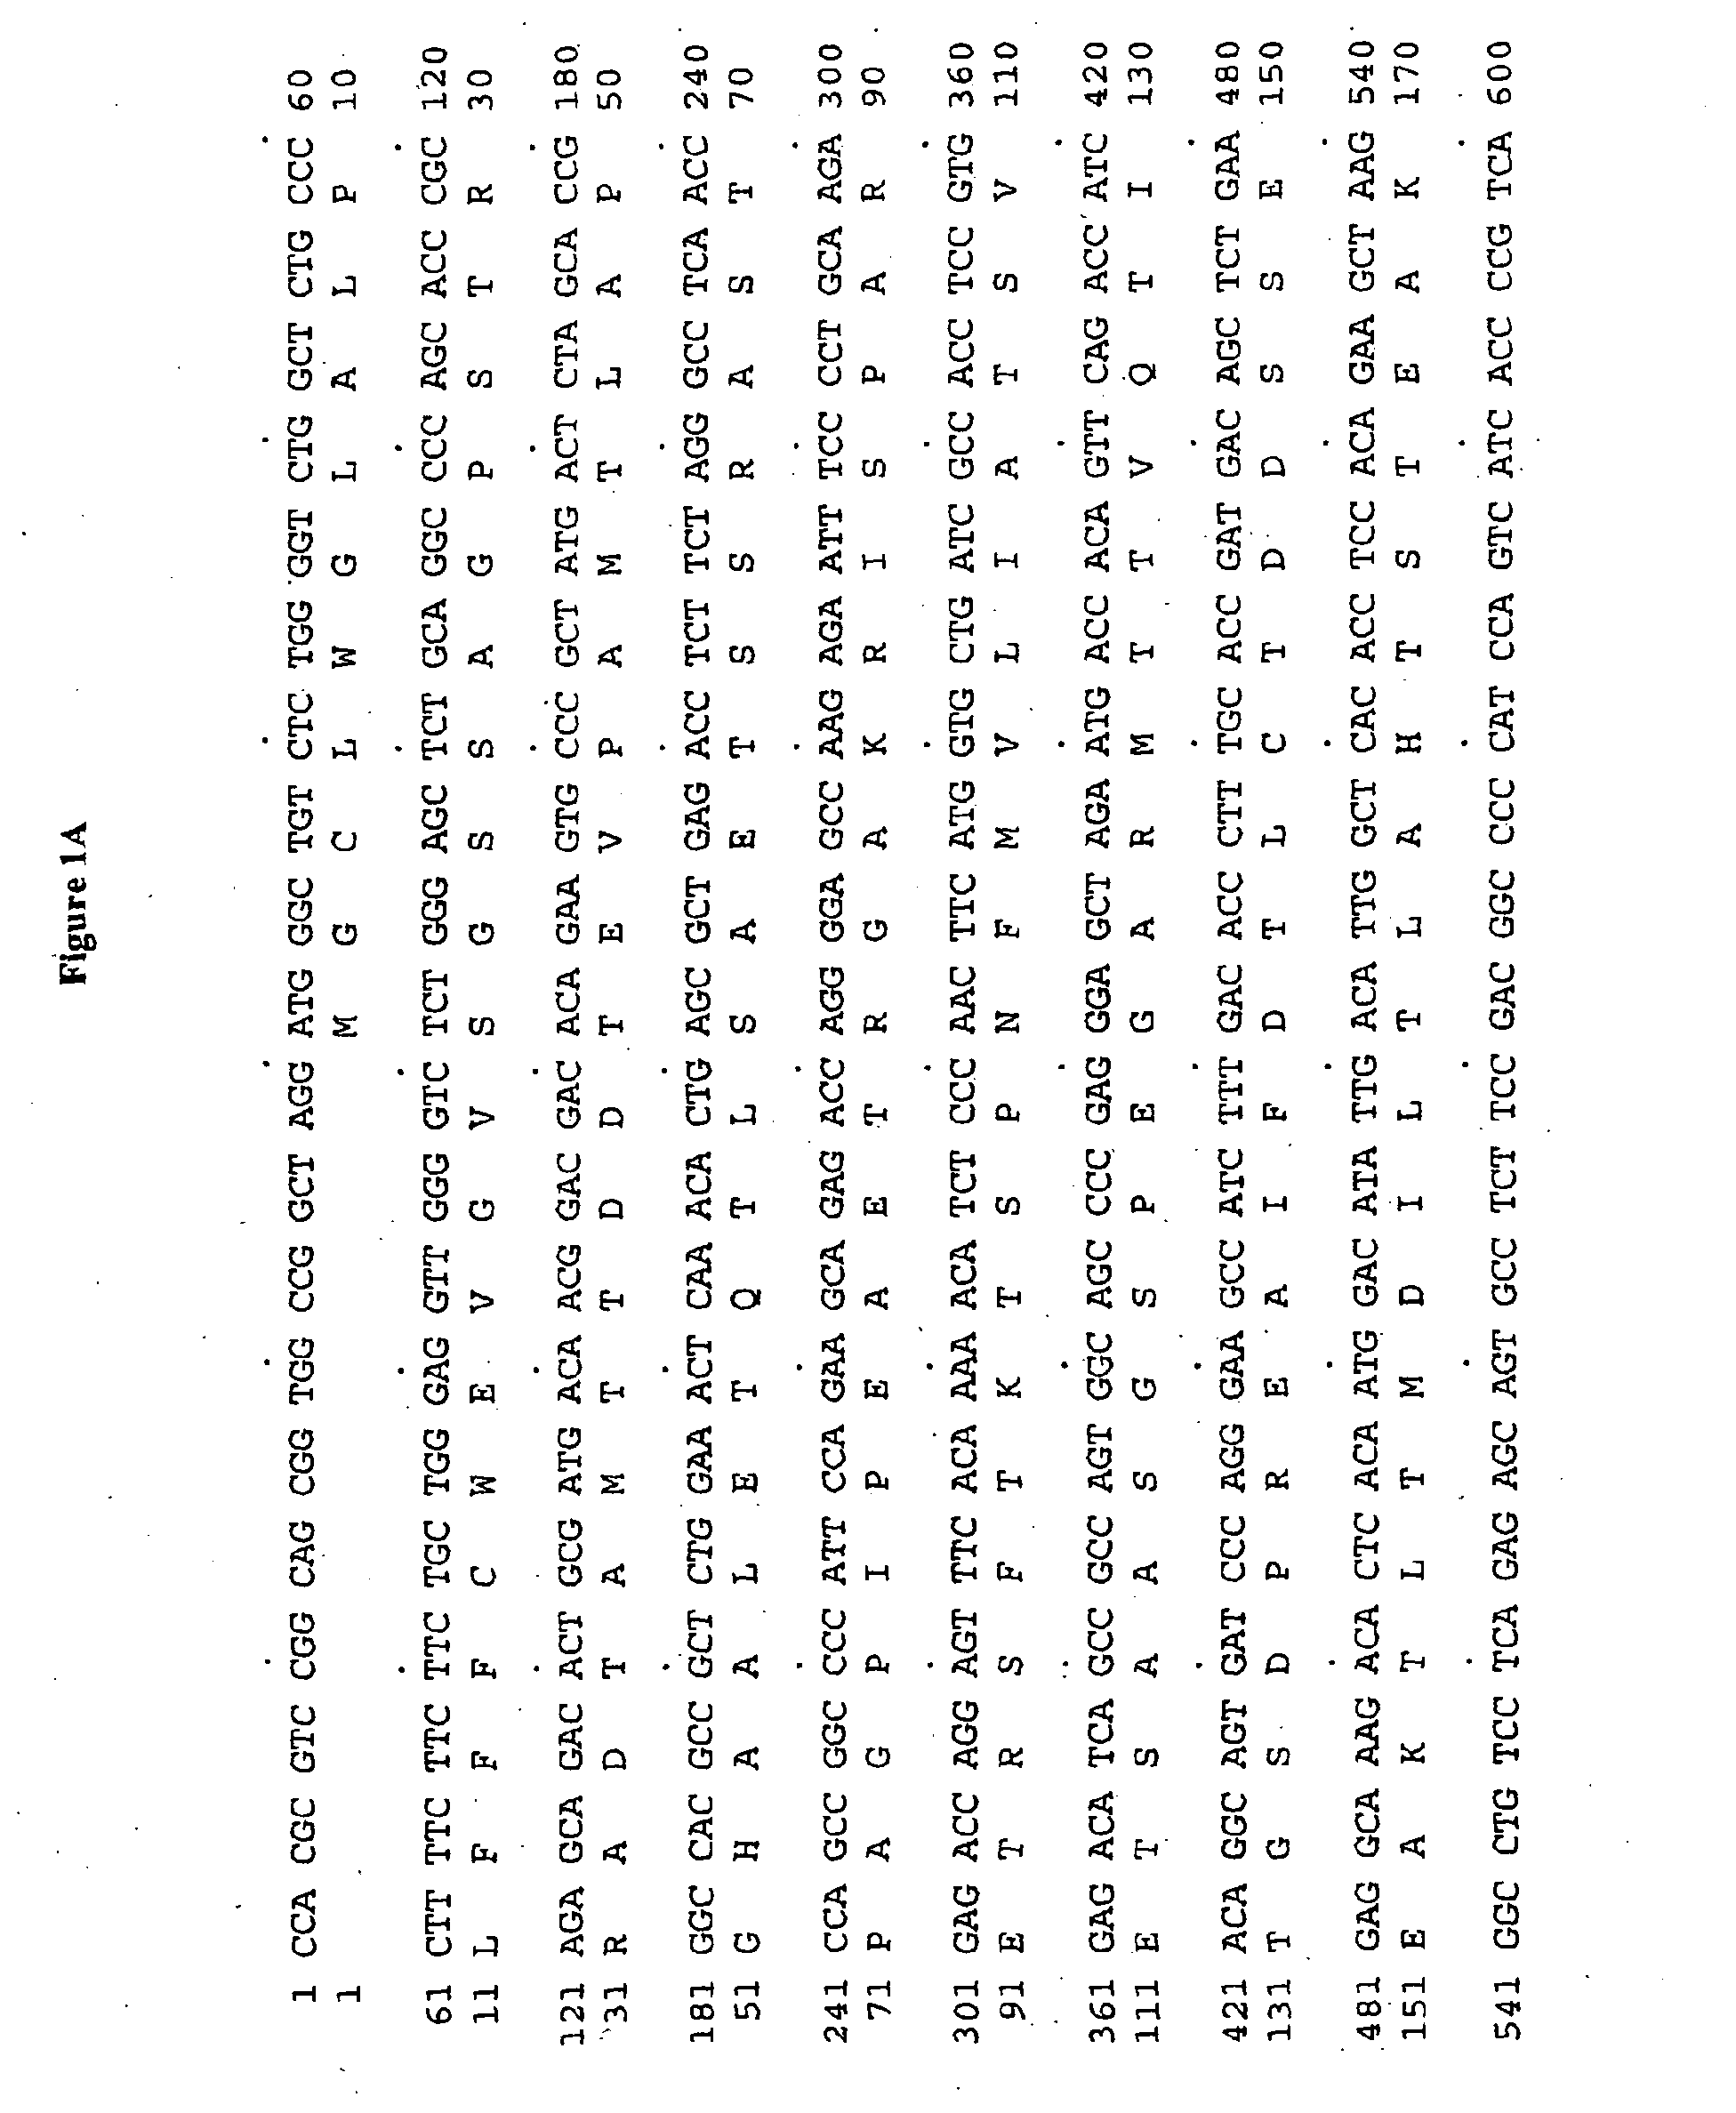 6 secreted proteins - Patent 1435361 on